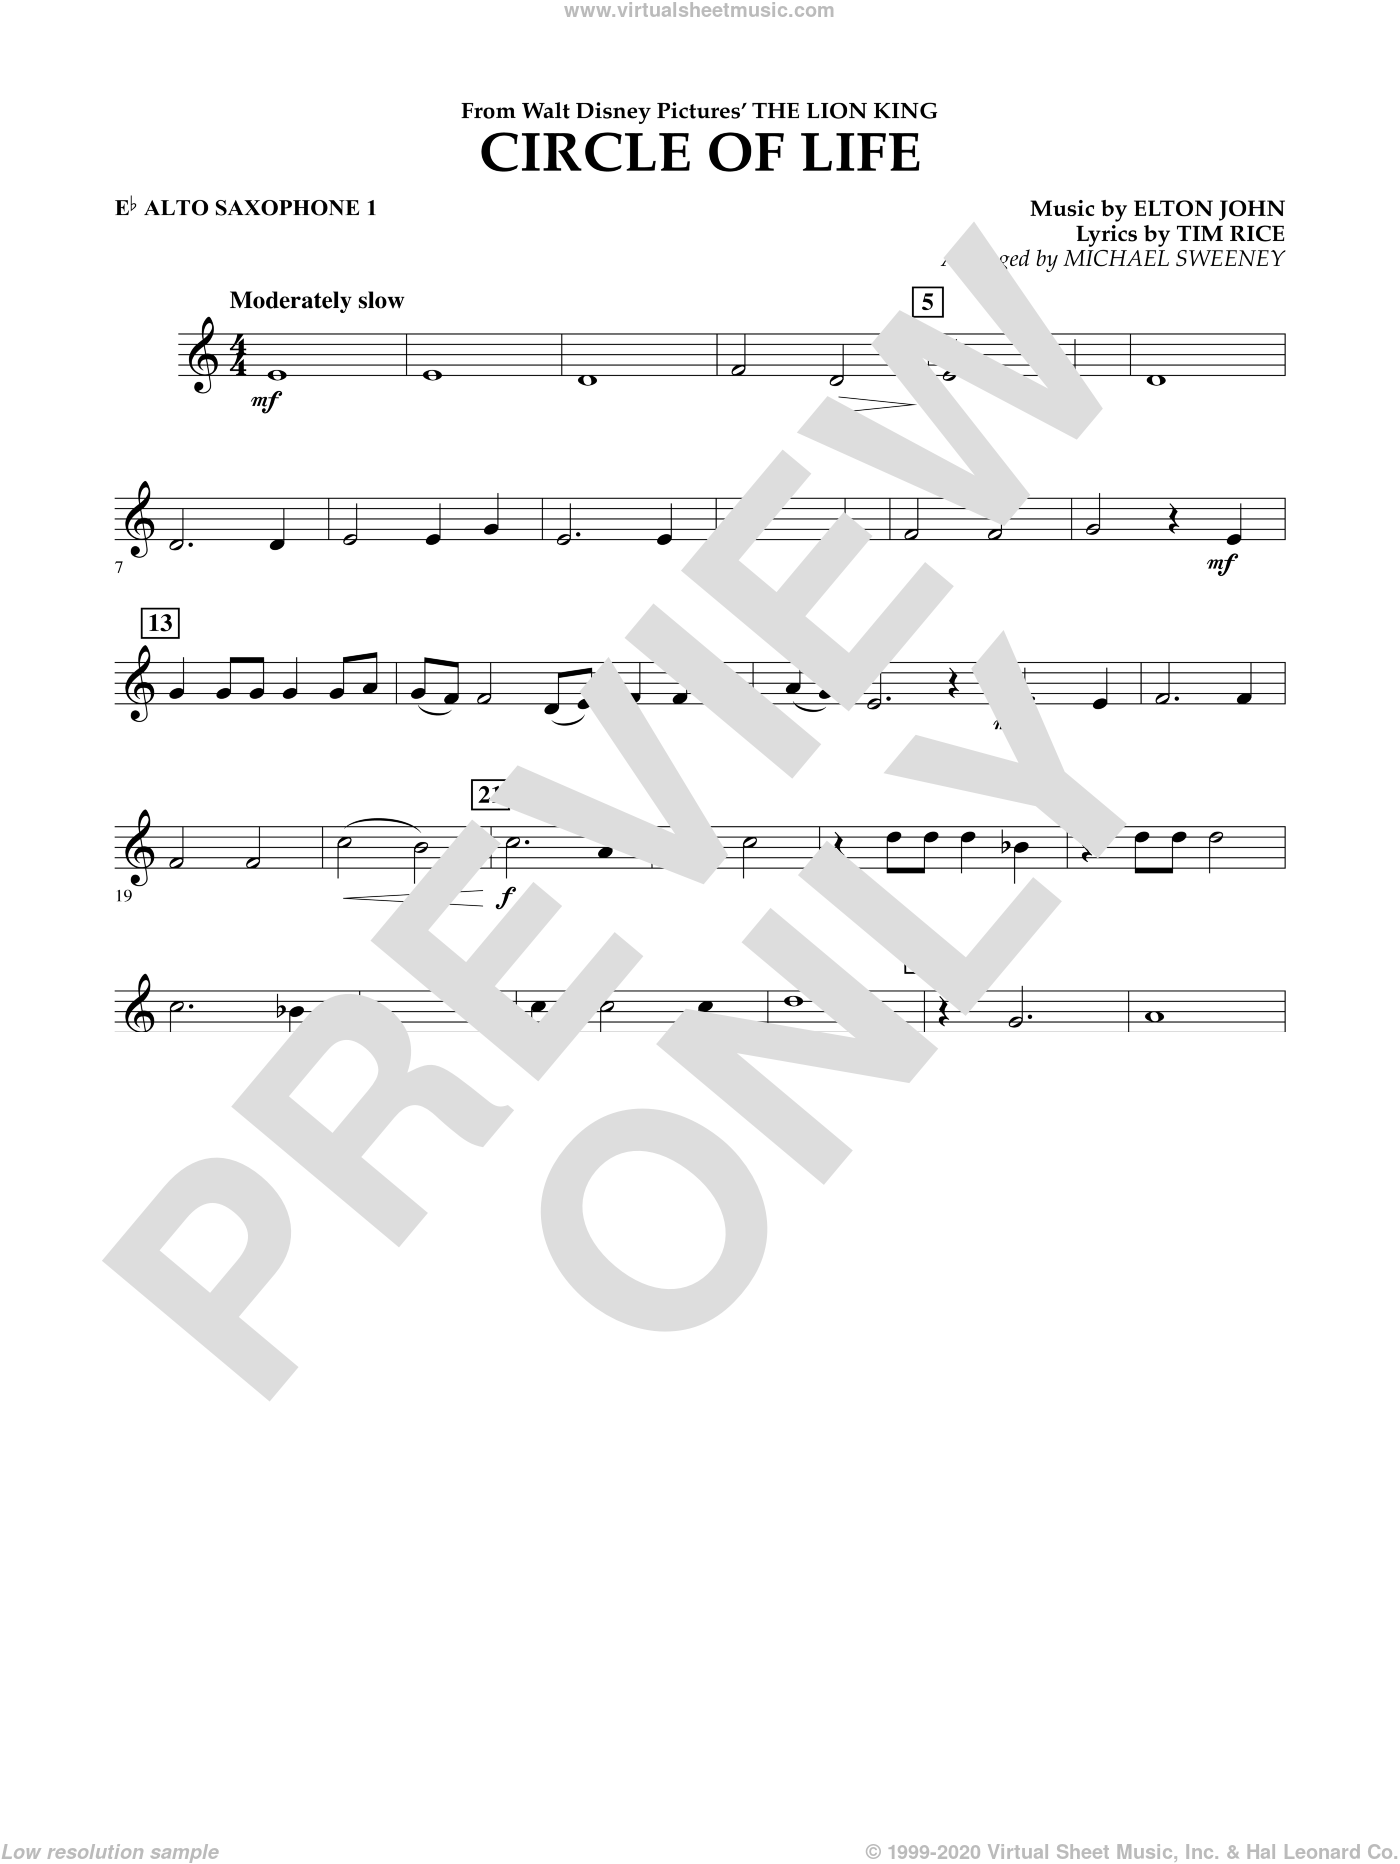 Circle of Life (from The Lion King) sheet music for concert band (Eb alto saxophone 1) by Elton John, Michael Sweeney and Tim Rice, intermediate concert band (Eb alto saxophone 1). Score Image Preview.